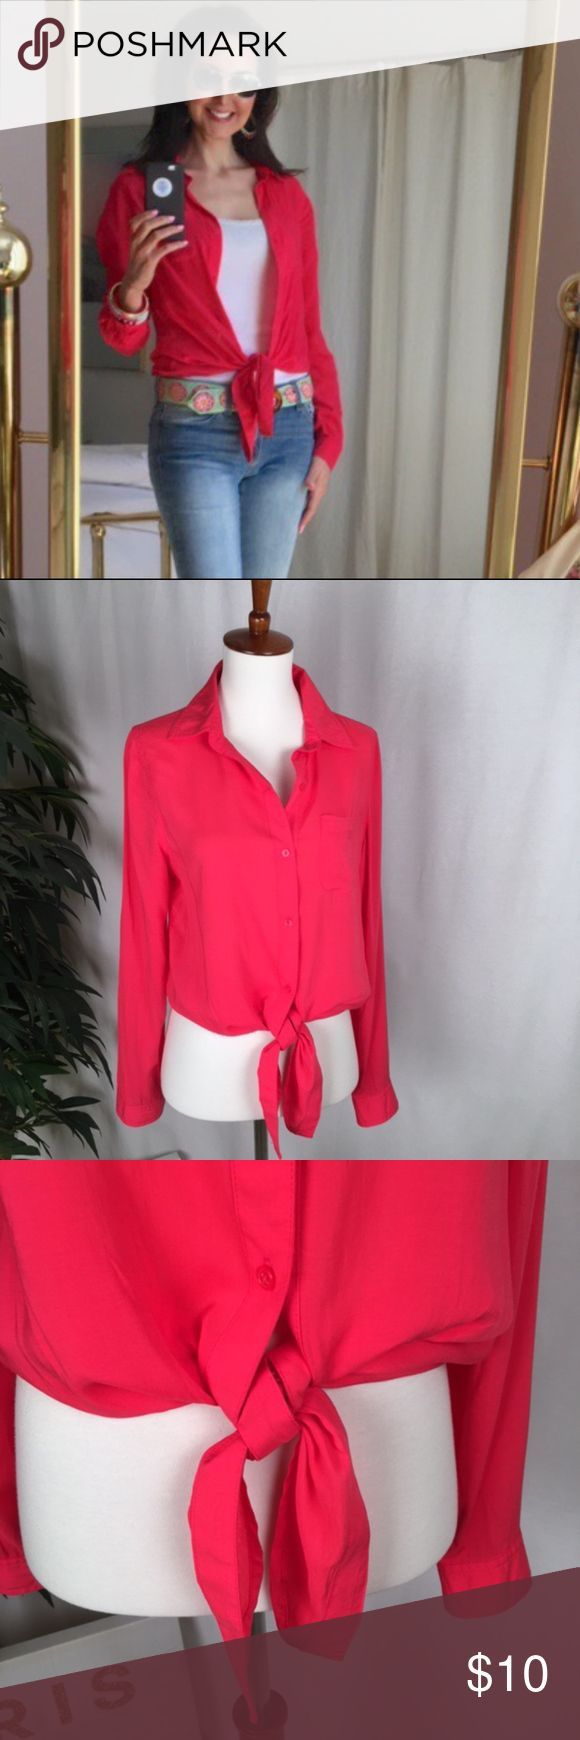 "Old Navy Coral Front Tie Blouse This pretty Old Navy button-down blouse can be worn w/ the front tied or hanging open for a longer shirt look. The color is CORAL (not pink)! The fabric is rayon & looks like silk. You'll be surprised this is an Old Navy item! It is in VERY GOOD condition; all buttons are in tack. Wear it layered w/a camisole like I did in the picture, or just the shirt alone. Looks great with jeans/white pants/skirt. NO Smoking/Pets // Measures: 26"" down back UNTIED/Shoulder…"